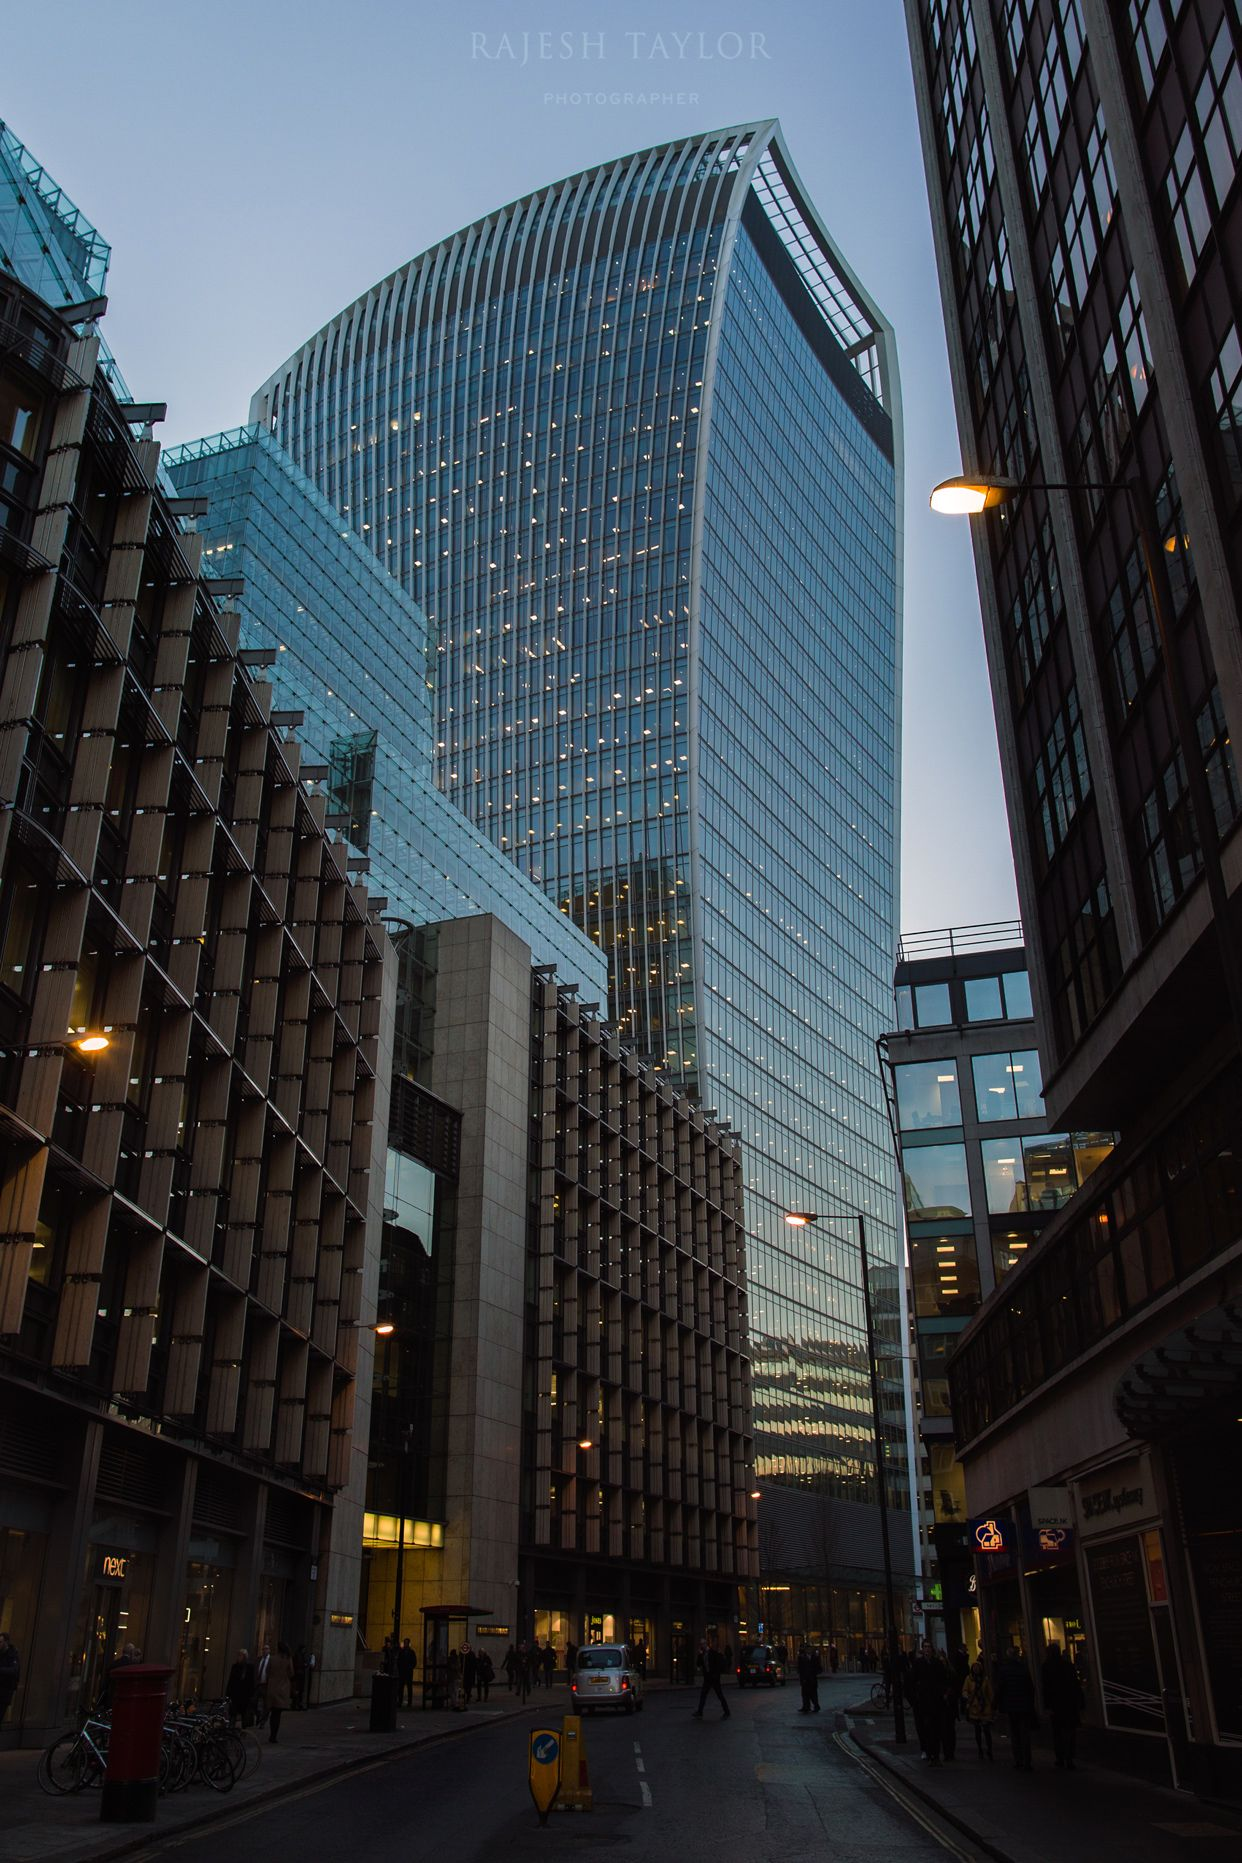 20 Fenchurch Street, Walkie Talkie Tower, City of London. ©Rajesh Taylor